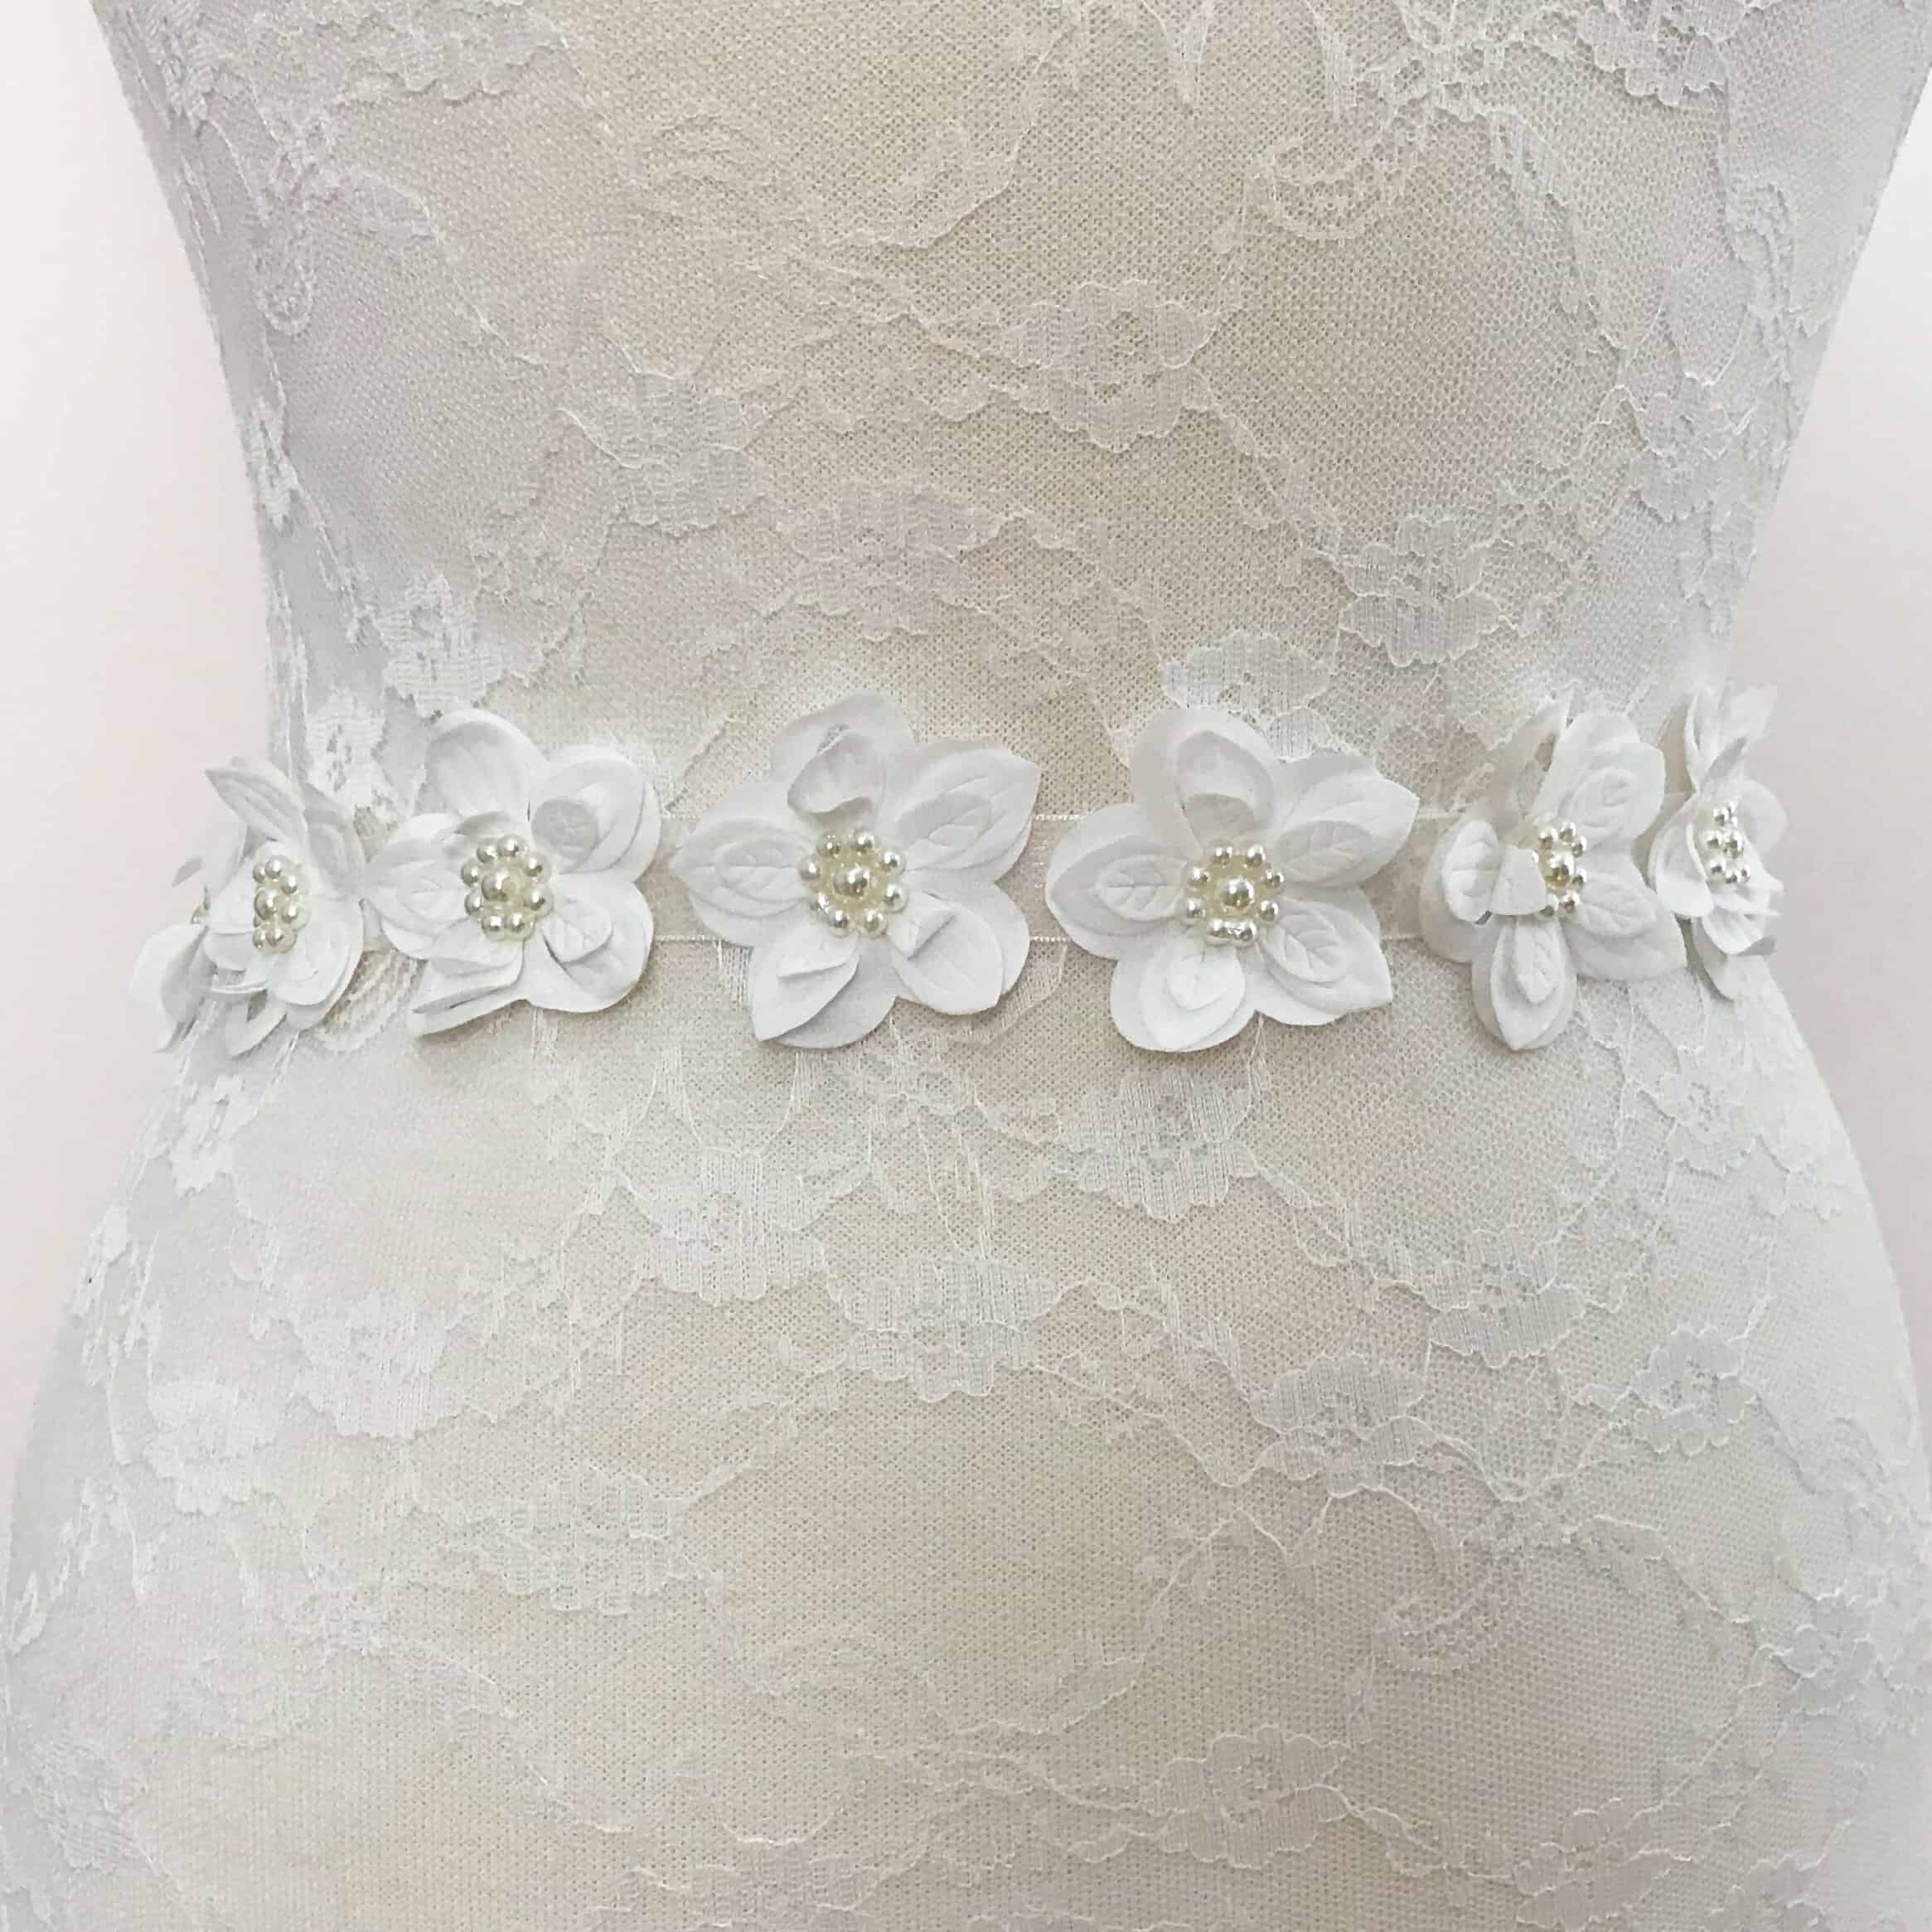 Fabric Flower Trim: White Satin Cut-Out Fabric Flower Trim With Pearls